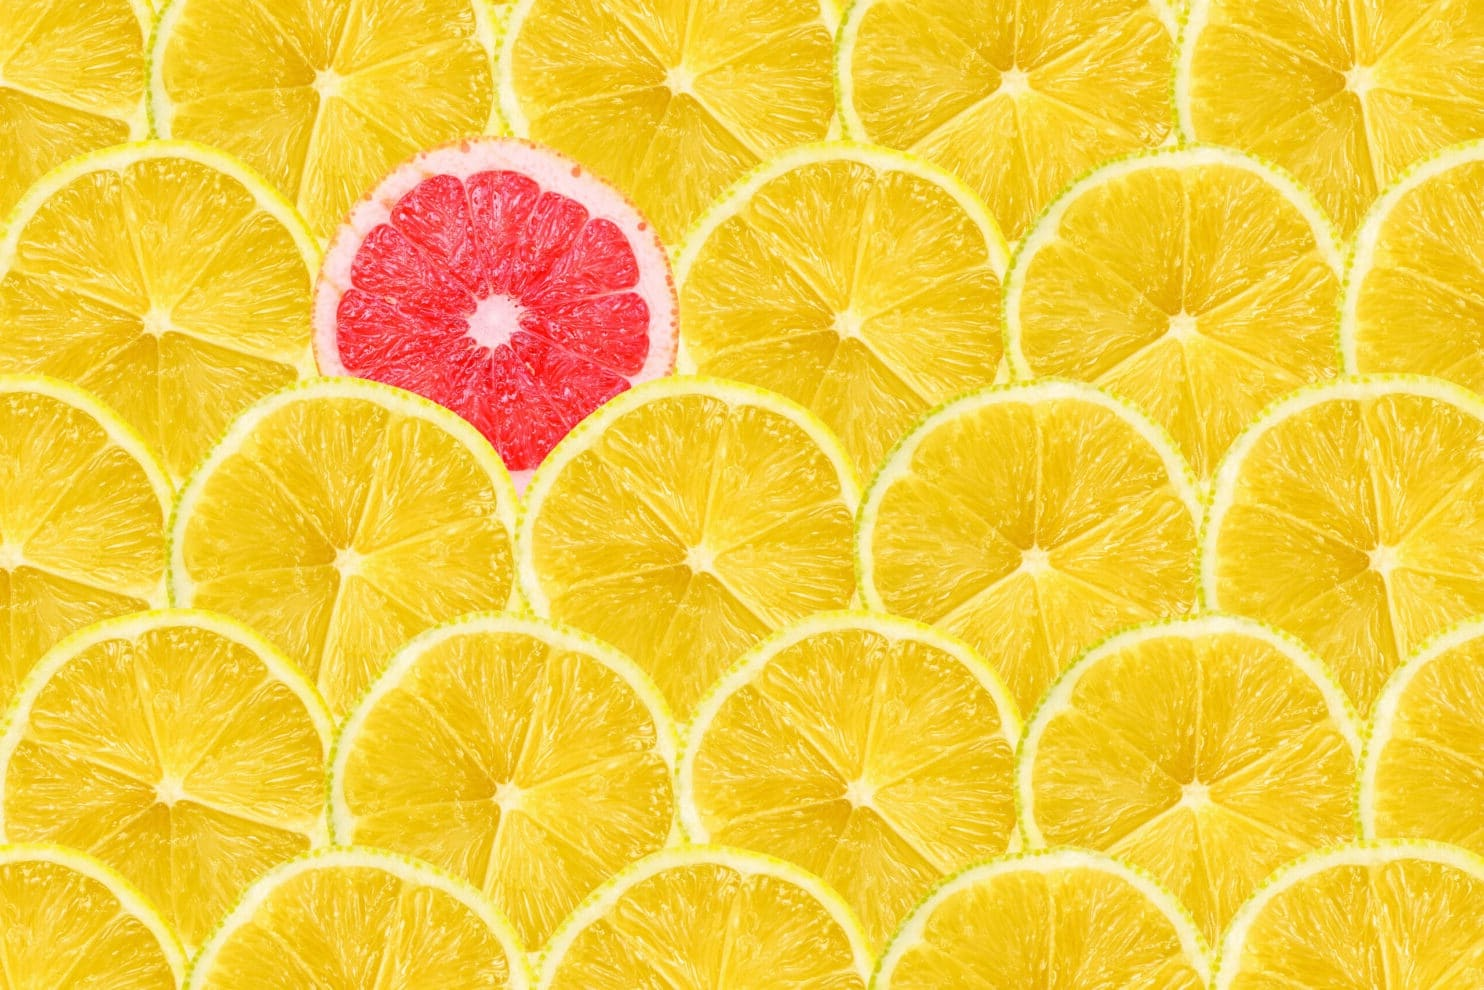 Picture of Lemon slices